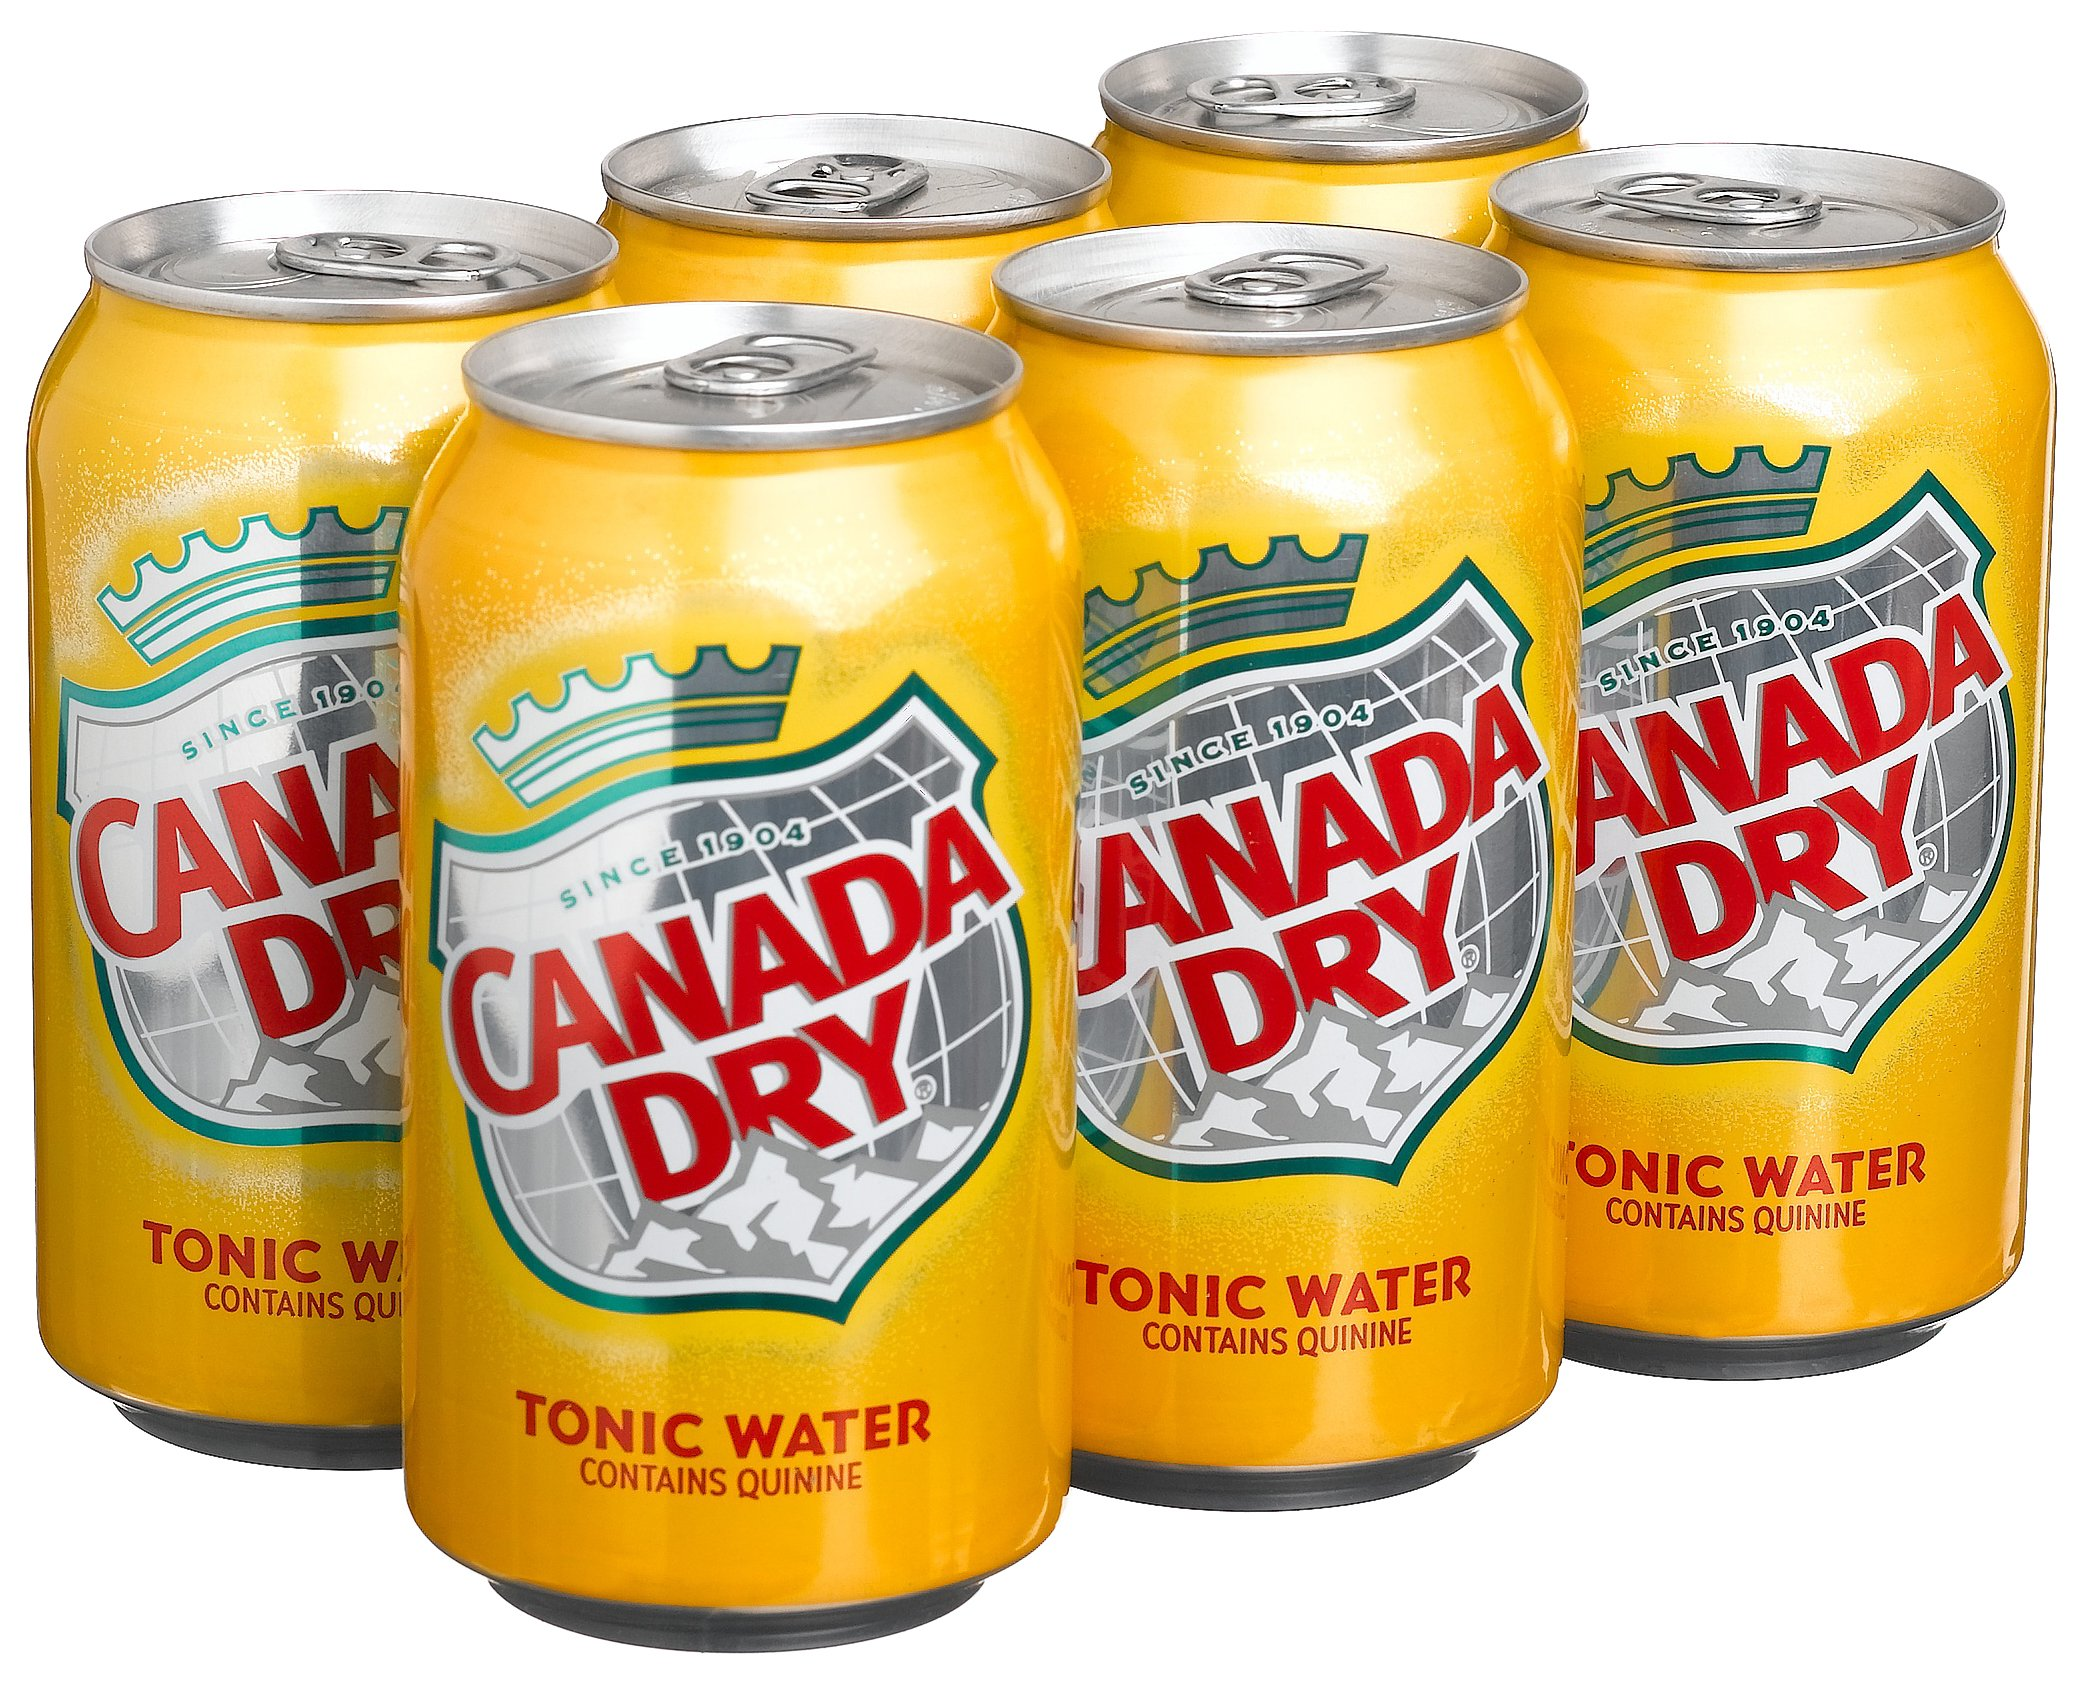 Canada Dry Tonic Water, 6pk, 12 oz by Canada Dry